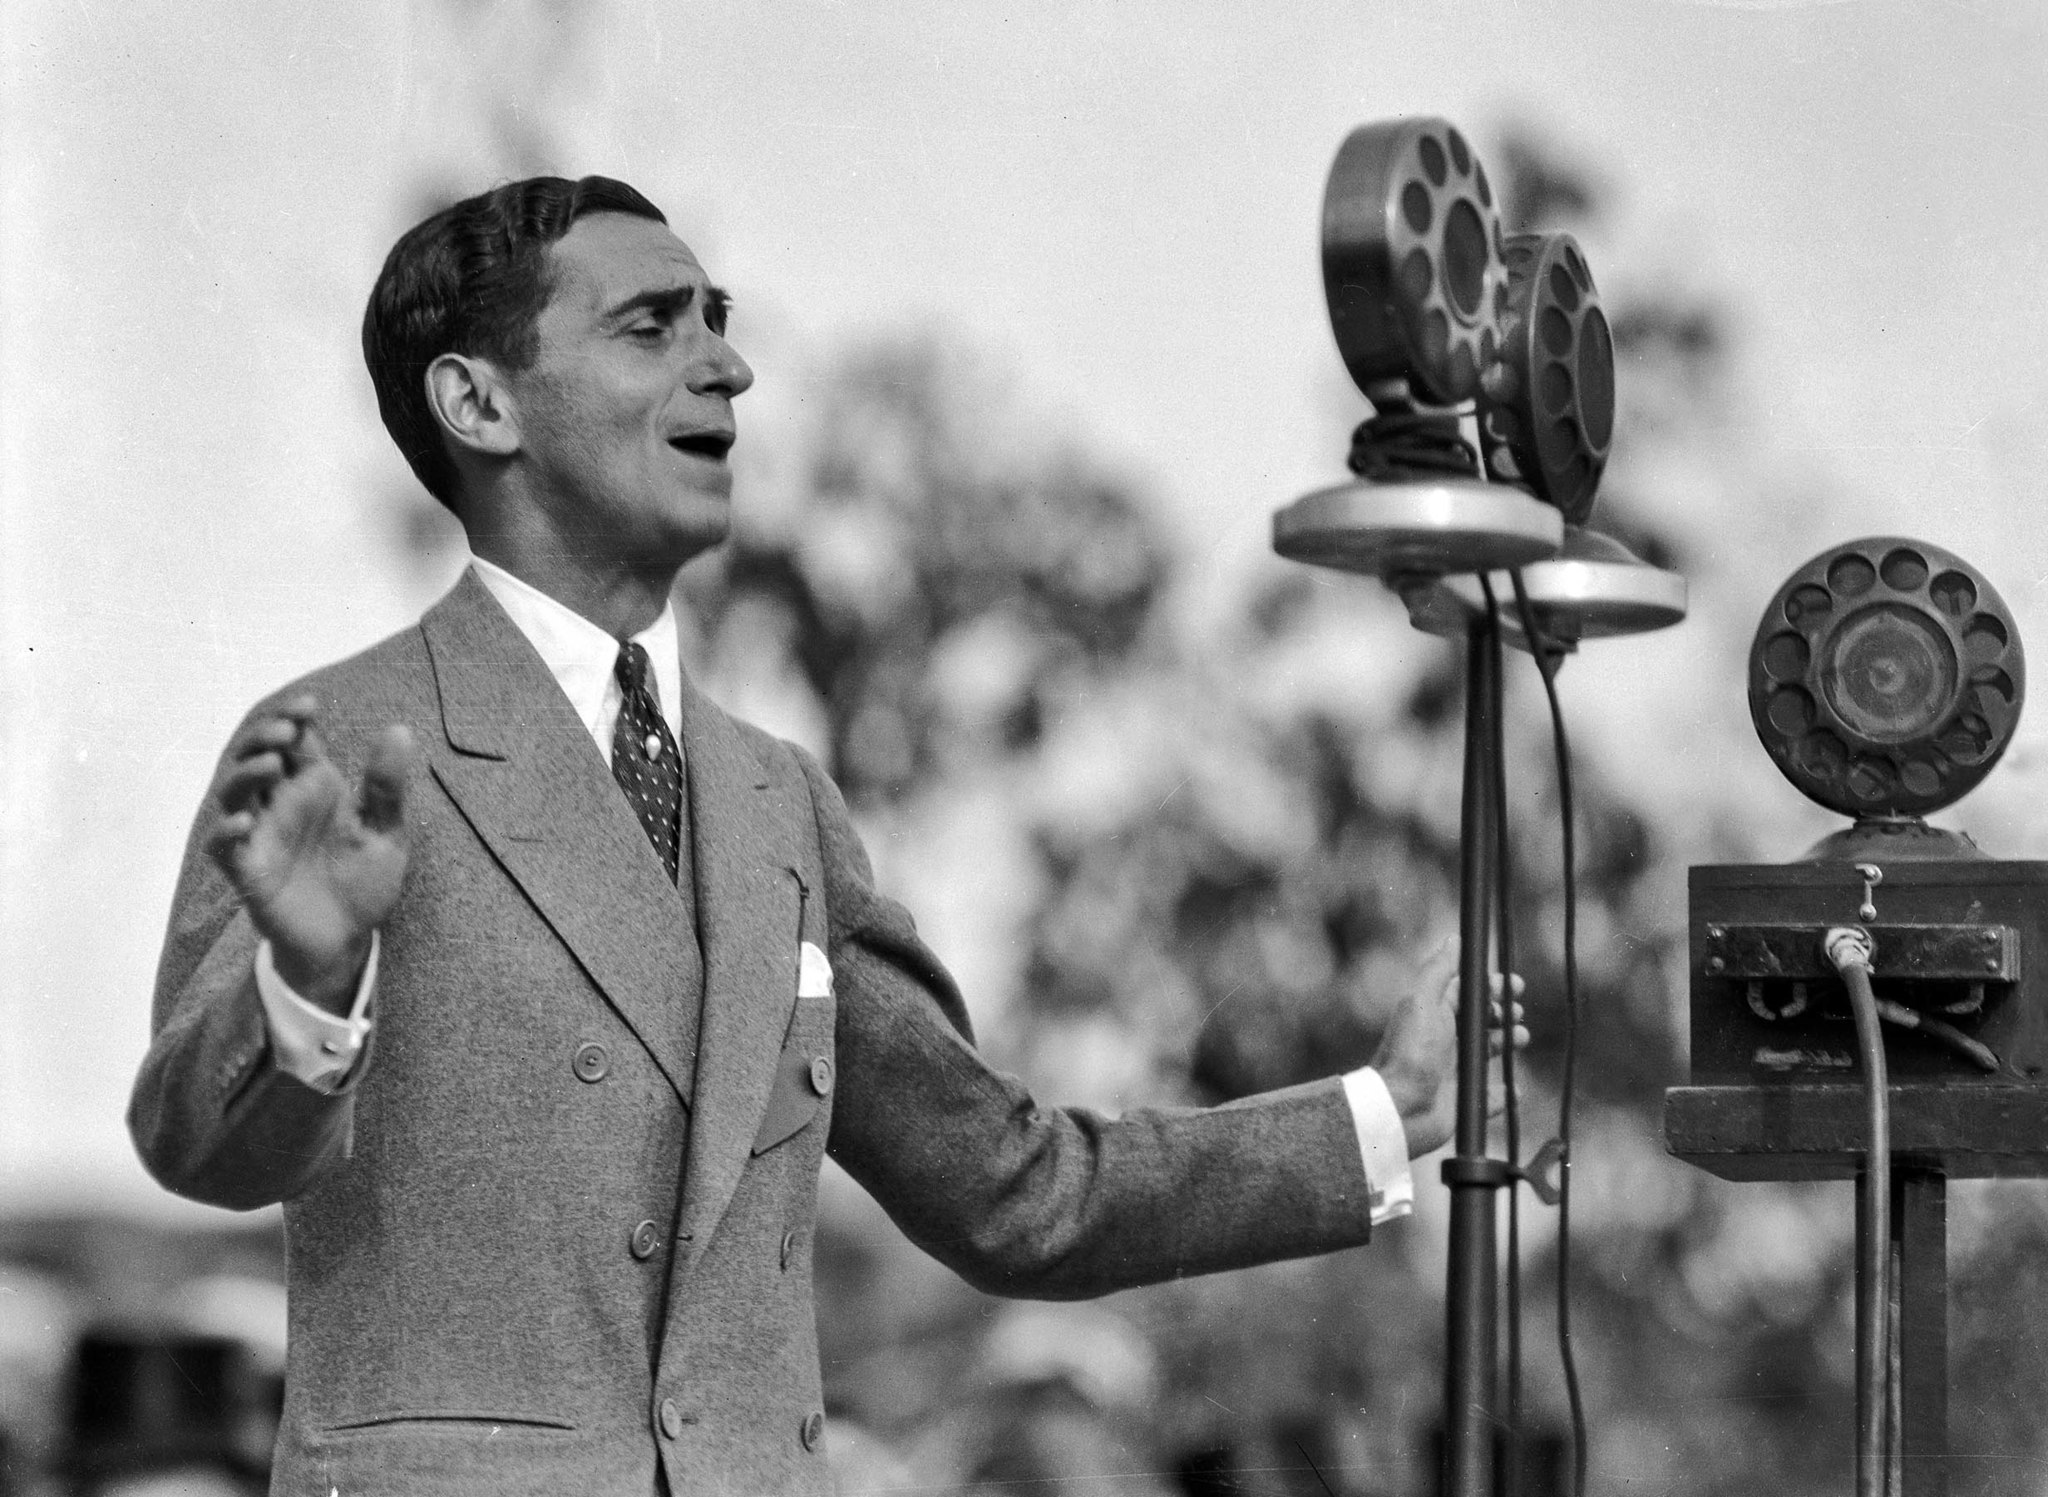 April 26, 1928: Irving Berlin sings at Los Angeles City Hall dedication ceremonies. This image is fr